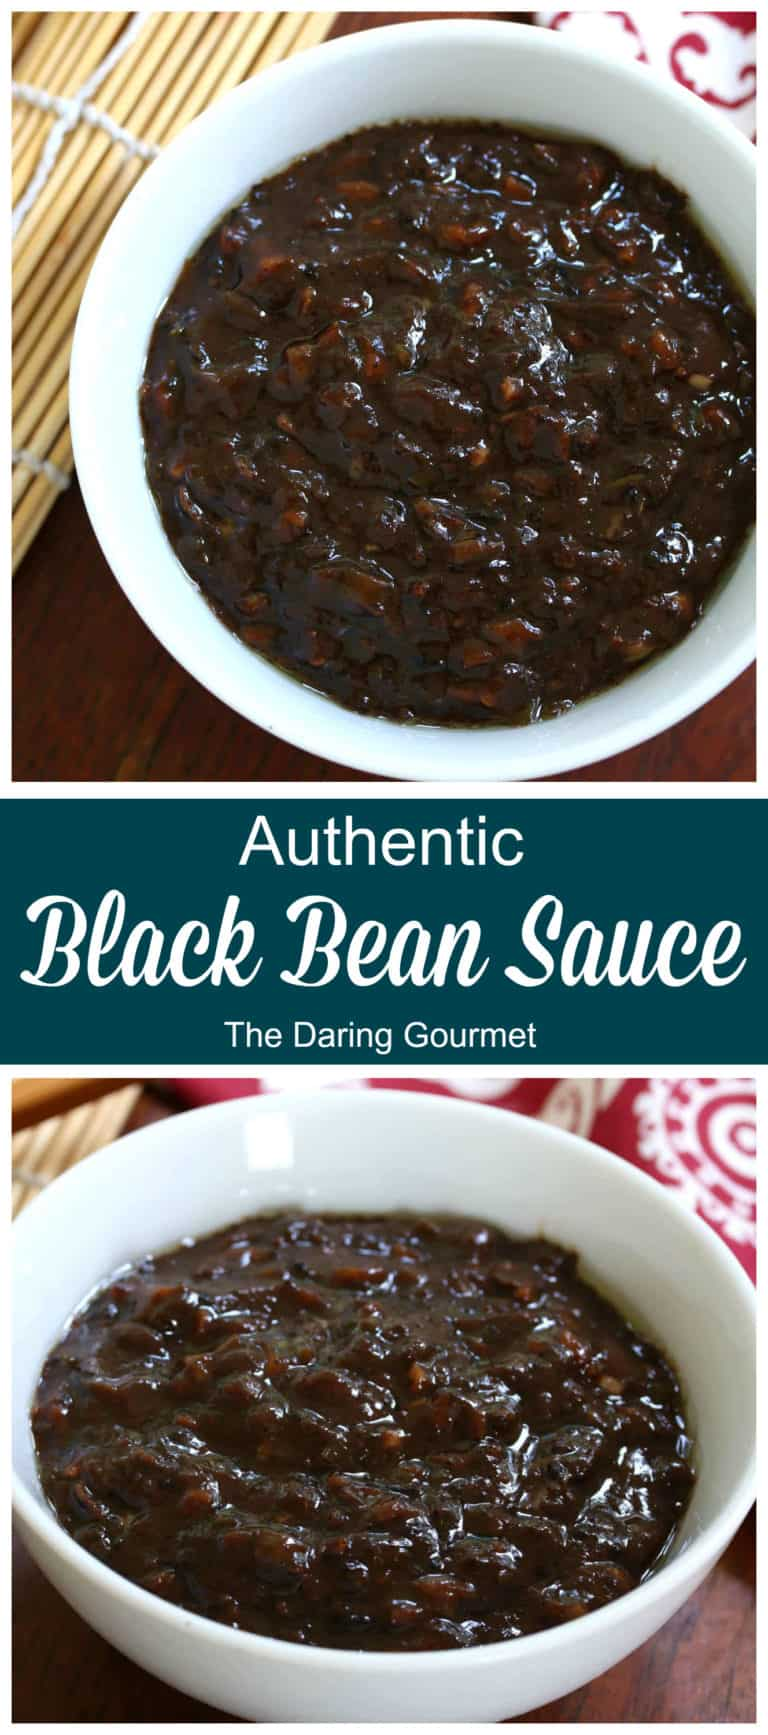 black bean sauce recipe authentic traditional Chinese Asian